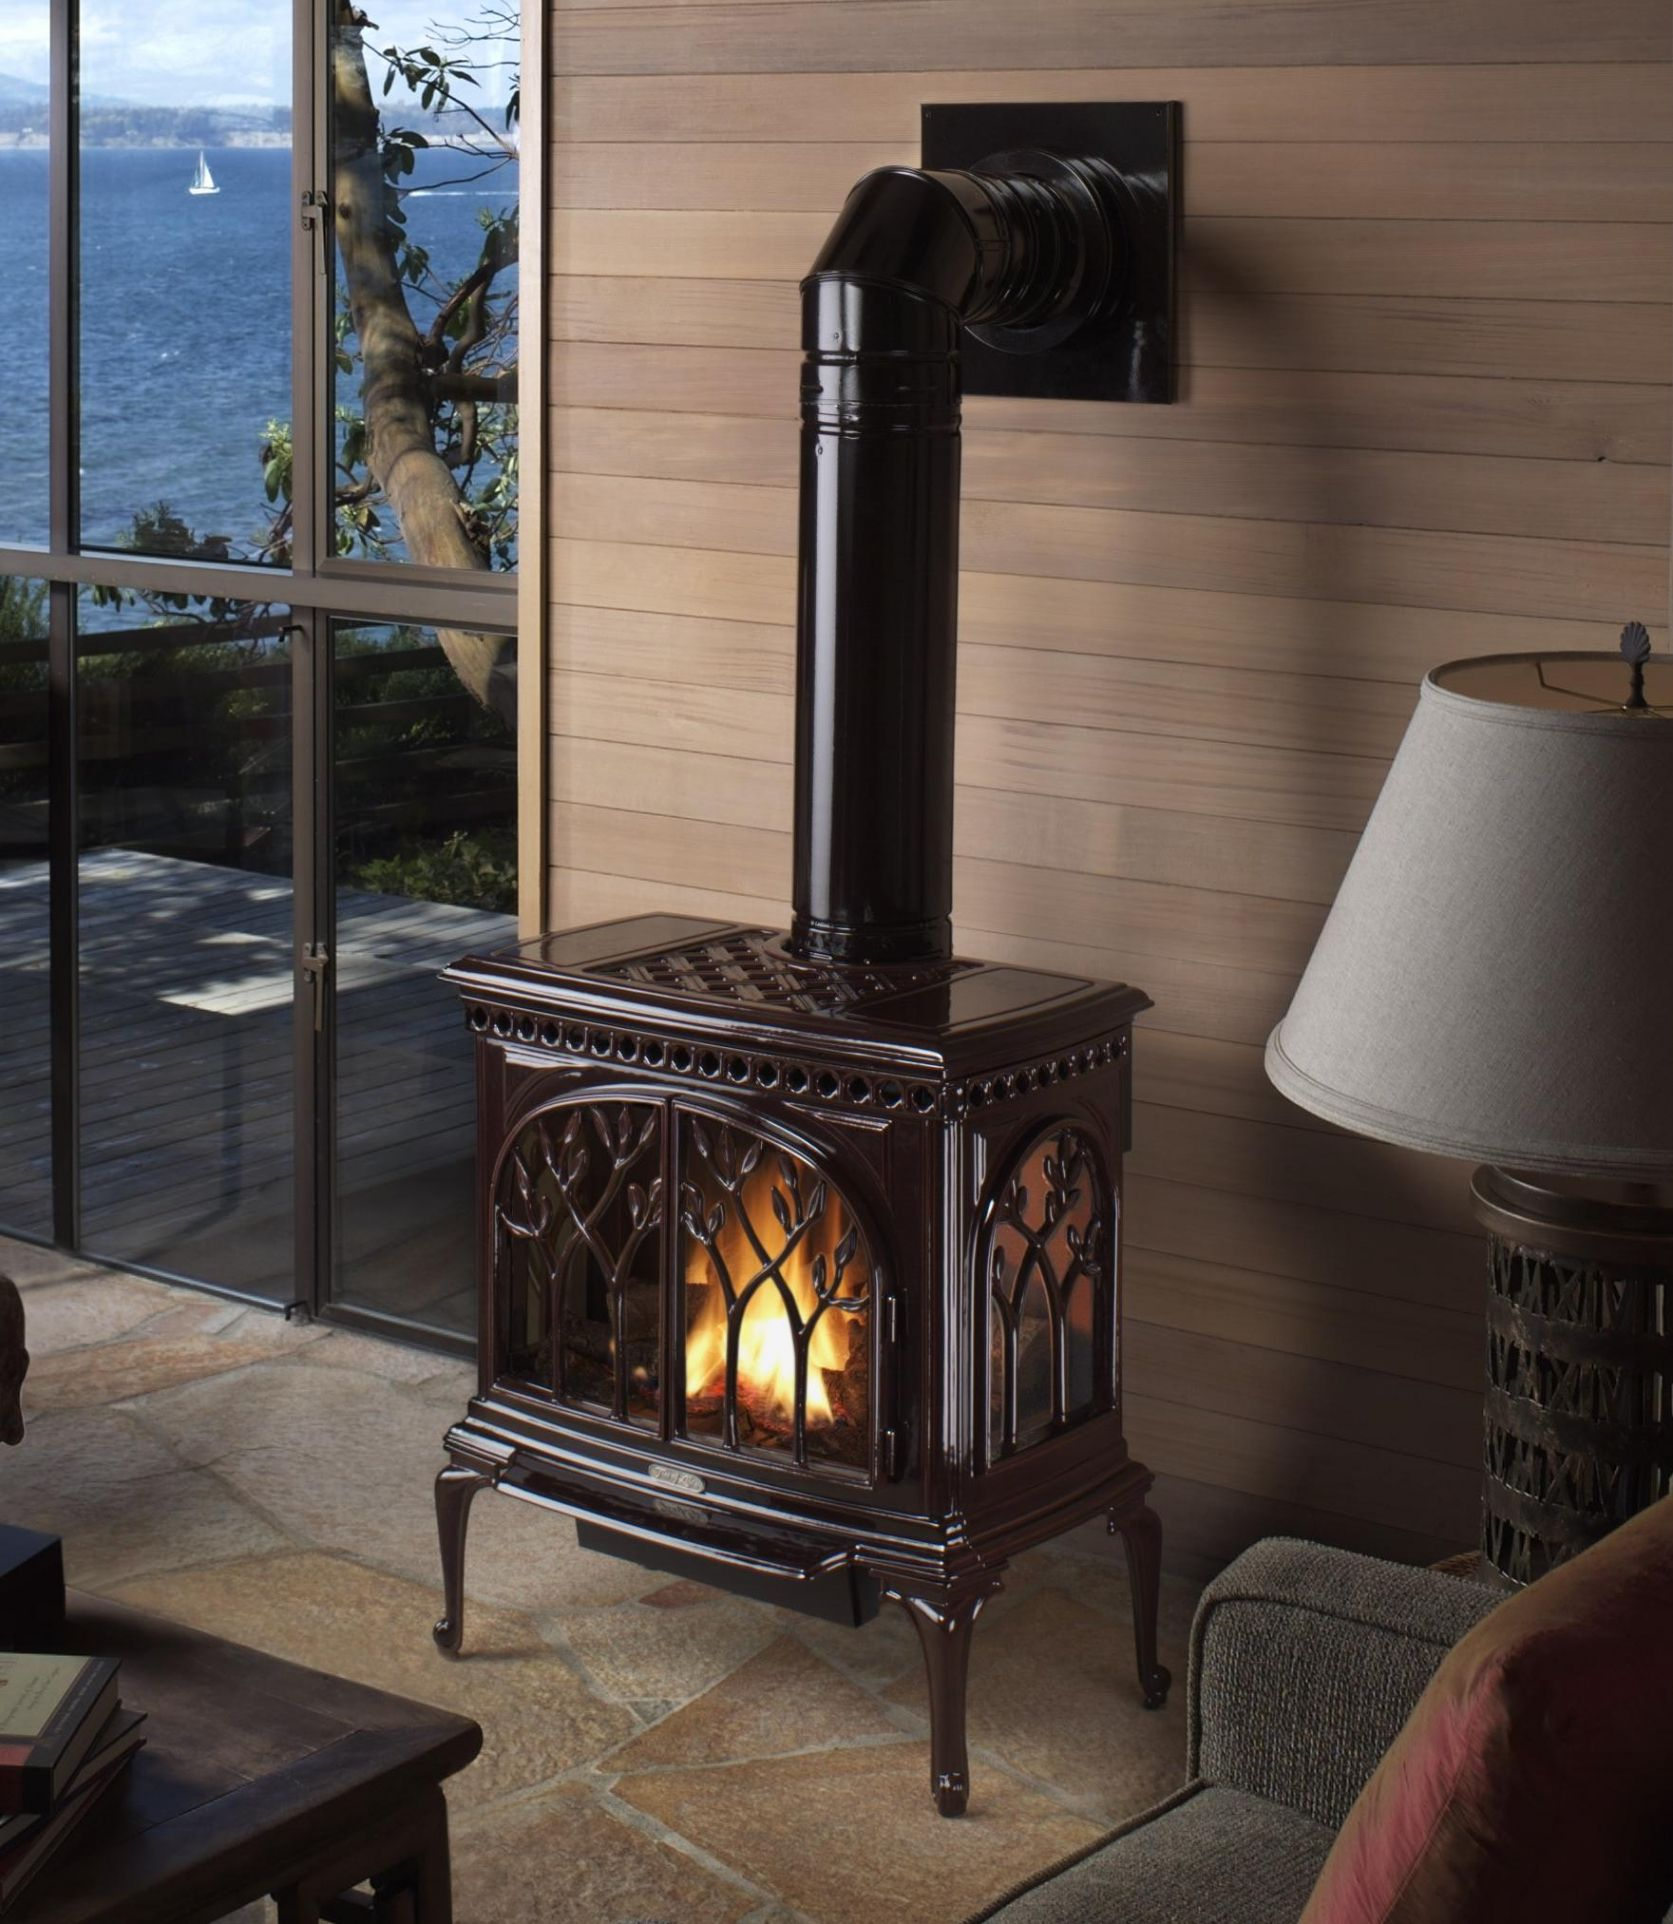 50 Stunning And Innovative Wood Stoves For Your Home Freshouz Com Gas Stove Fireplace Direct Vent Gas Stove Wood Stove